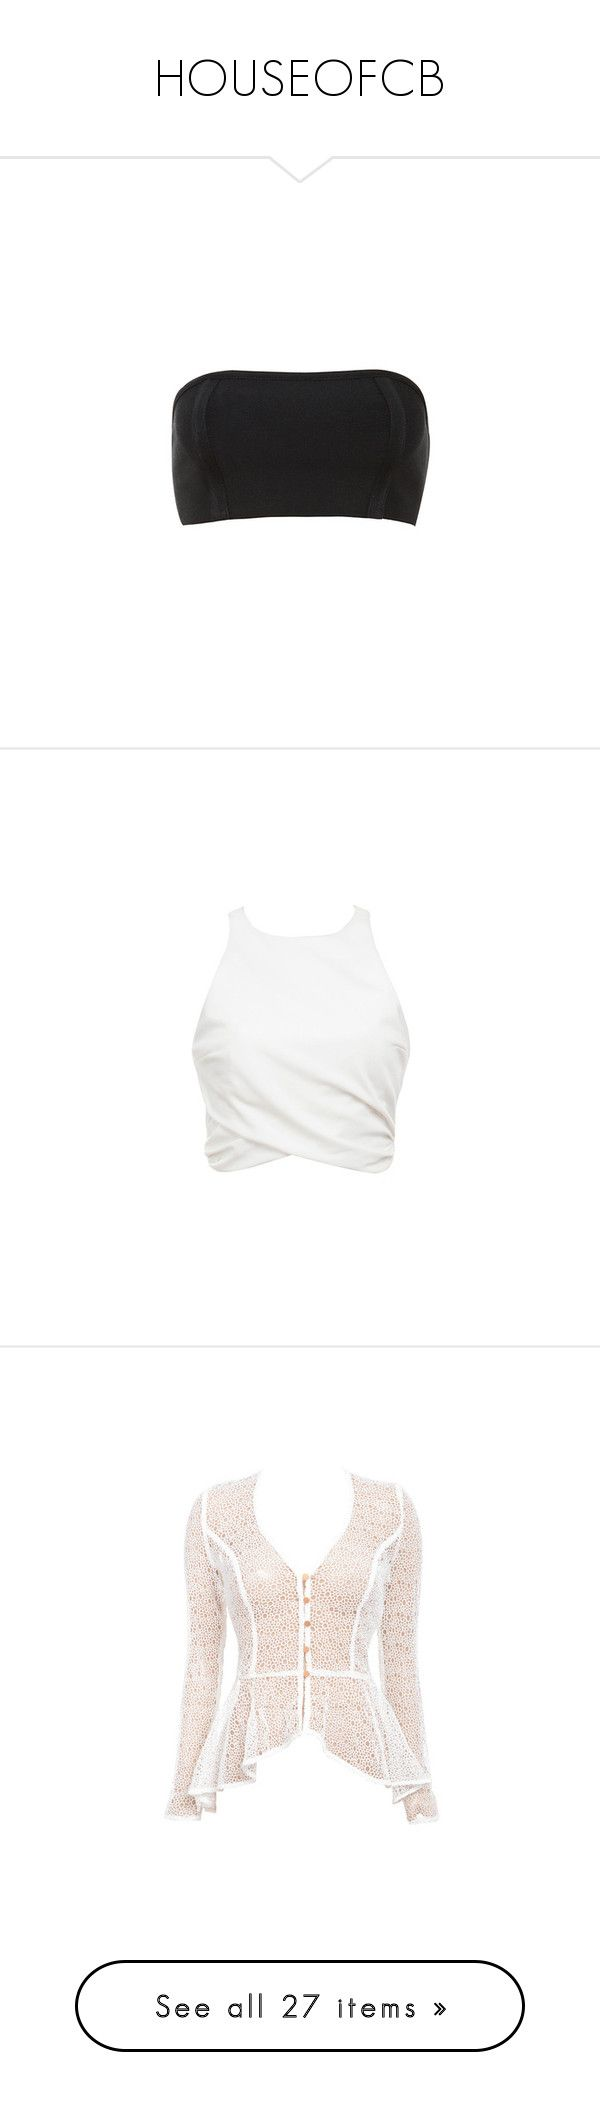 """""""HOUSEOFCB"""" by roexstylez89 ❤ liked on Polyvore featuring tops, gold bandeau top, bandeau bikini top, bandeau tops, bandage top, stretch top, white sleeveless top, white drape top, sleeveless crop top and white crop top"""